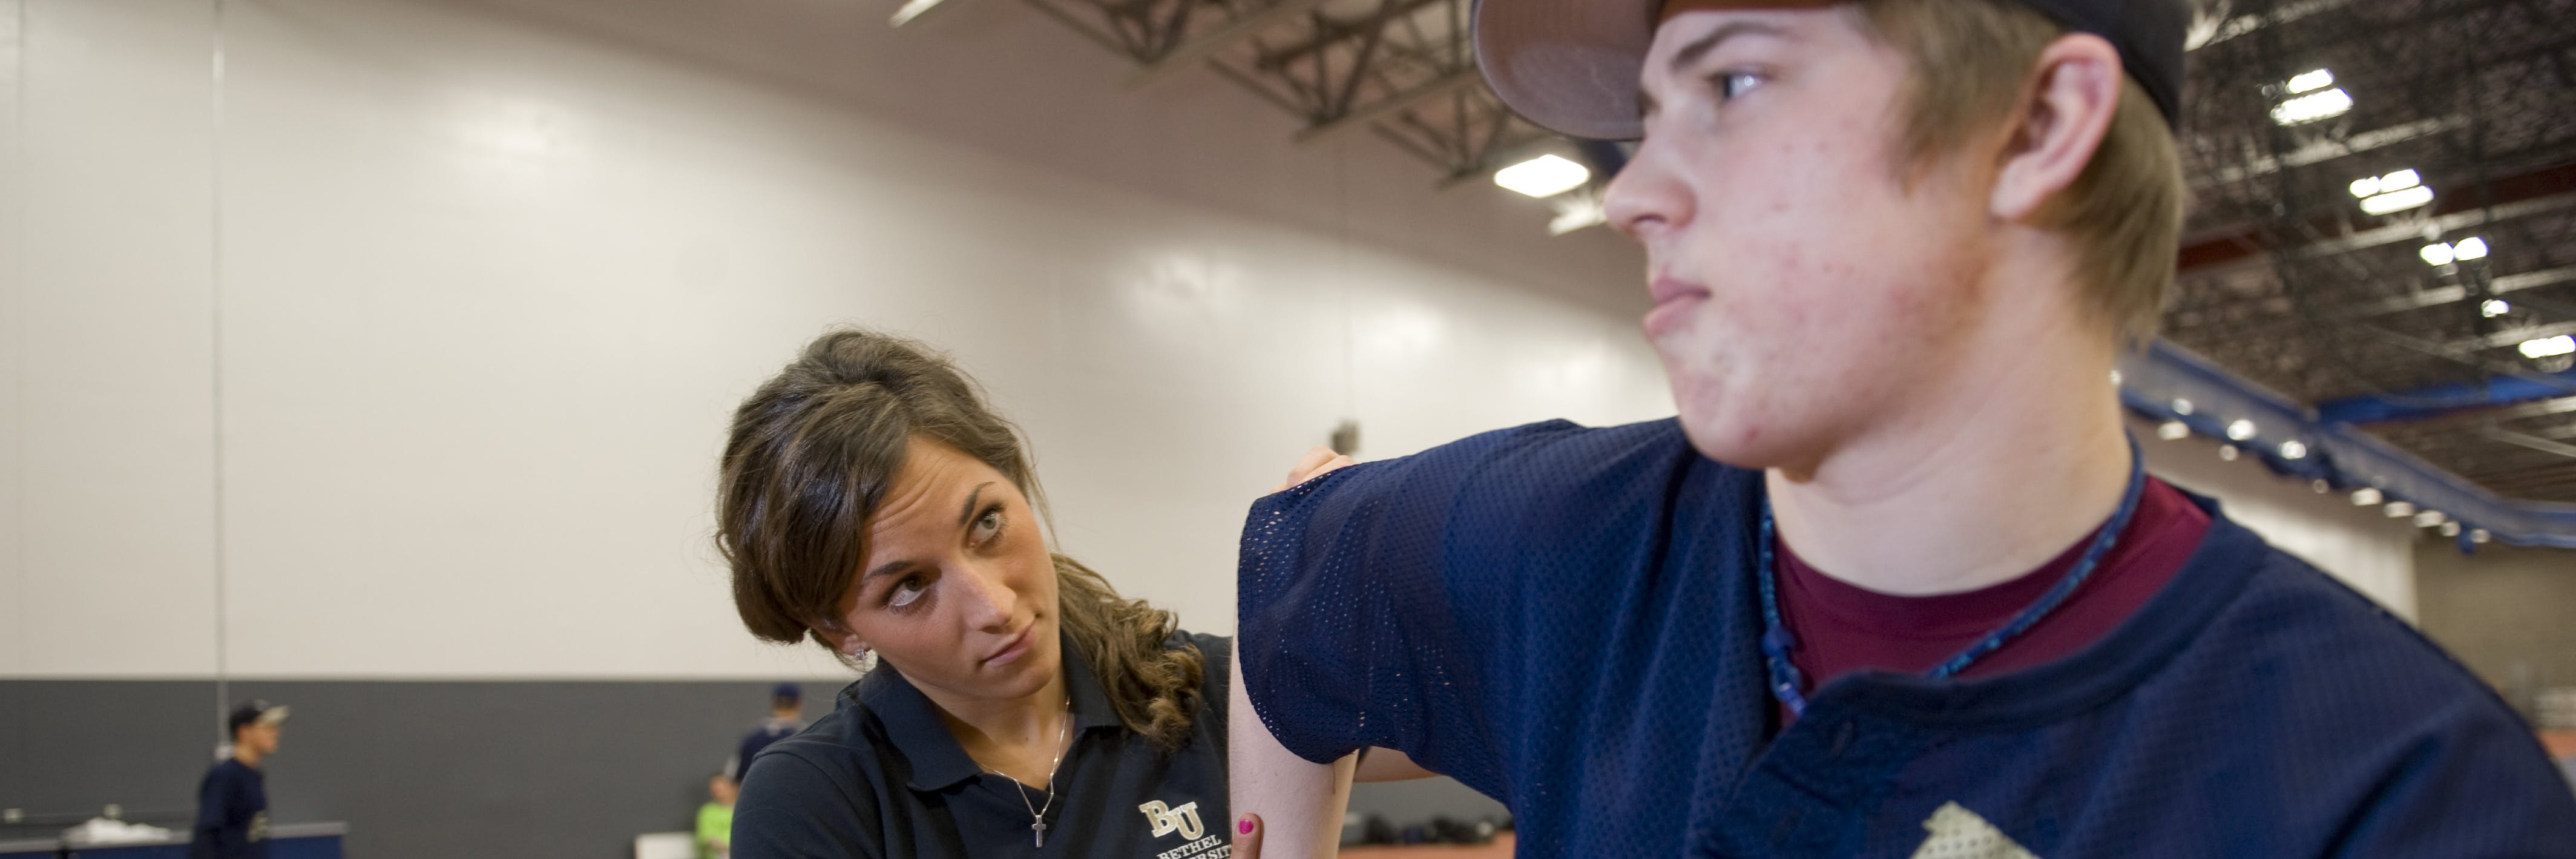 Student practicing athletic training